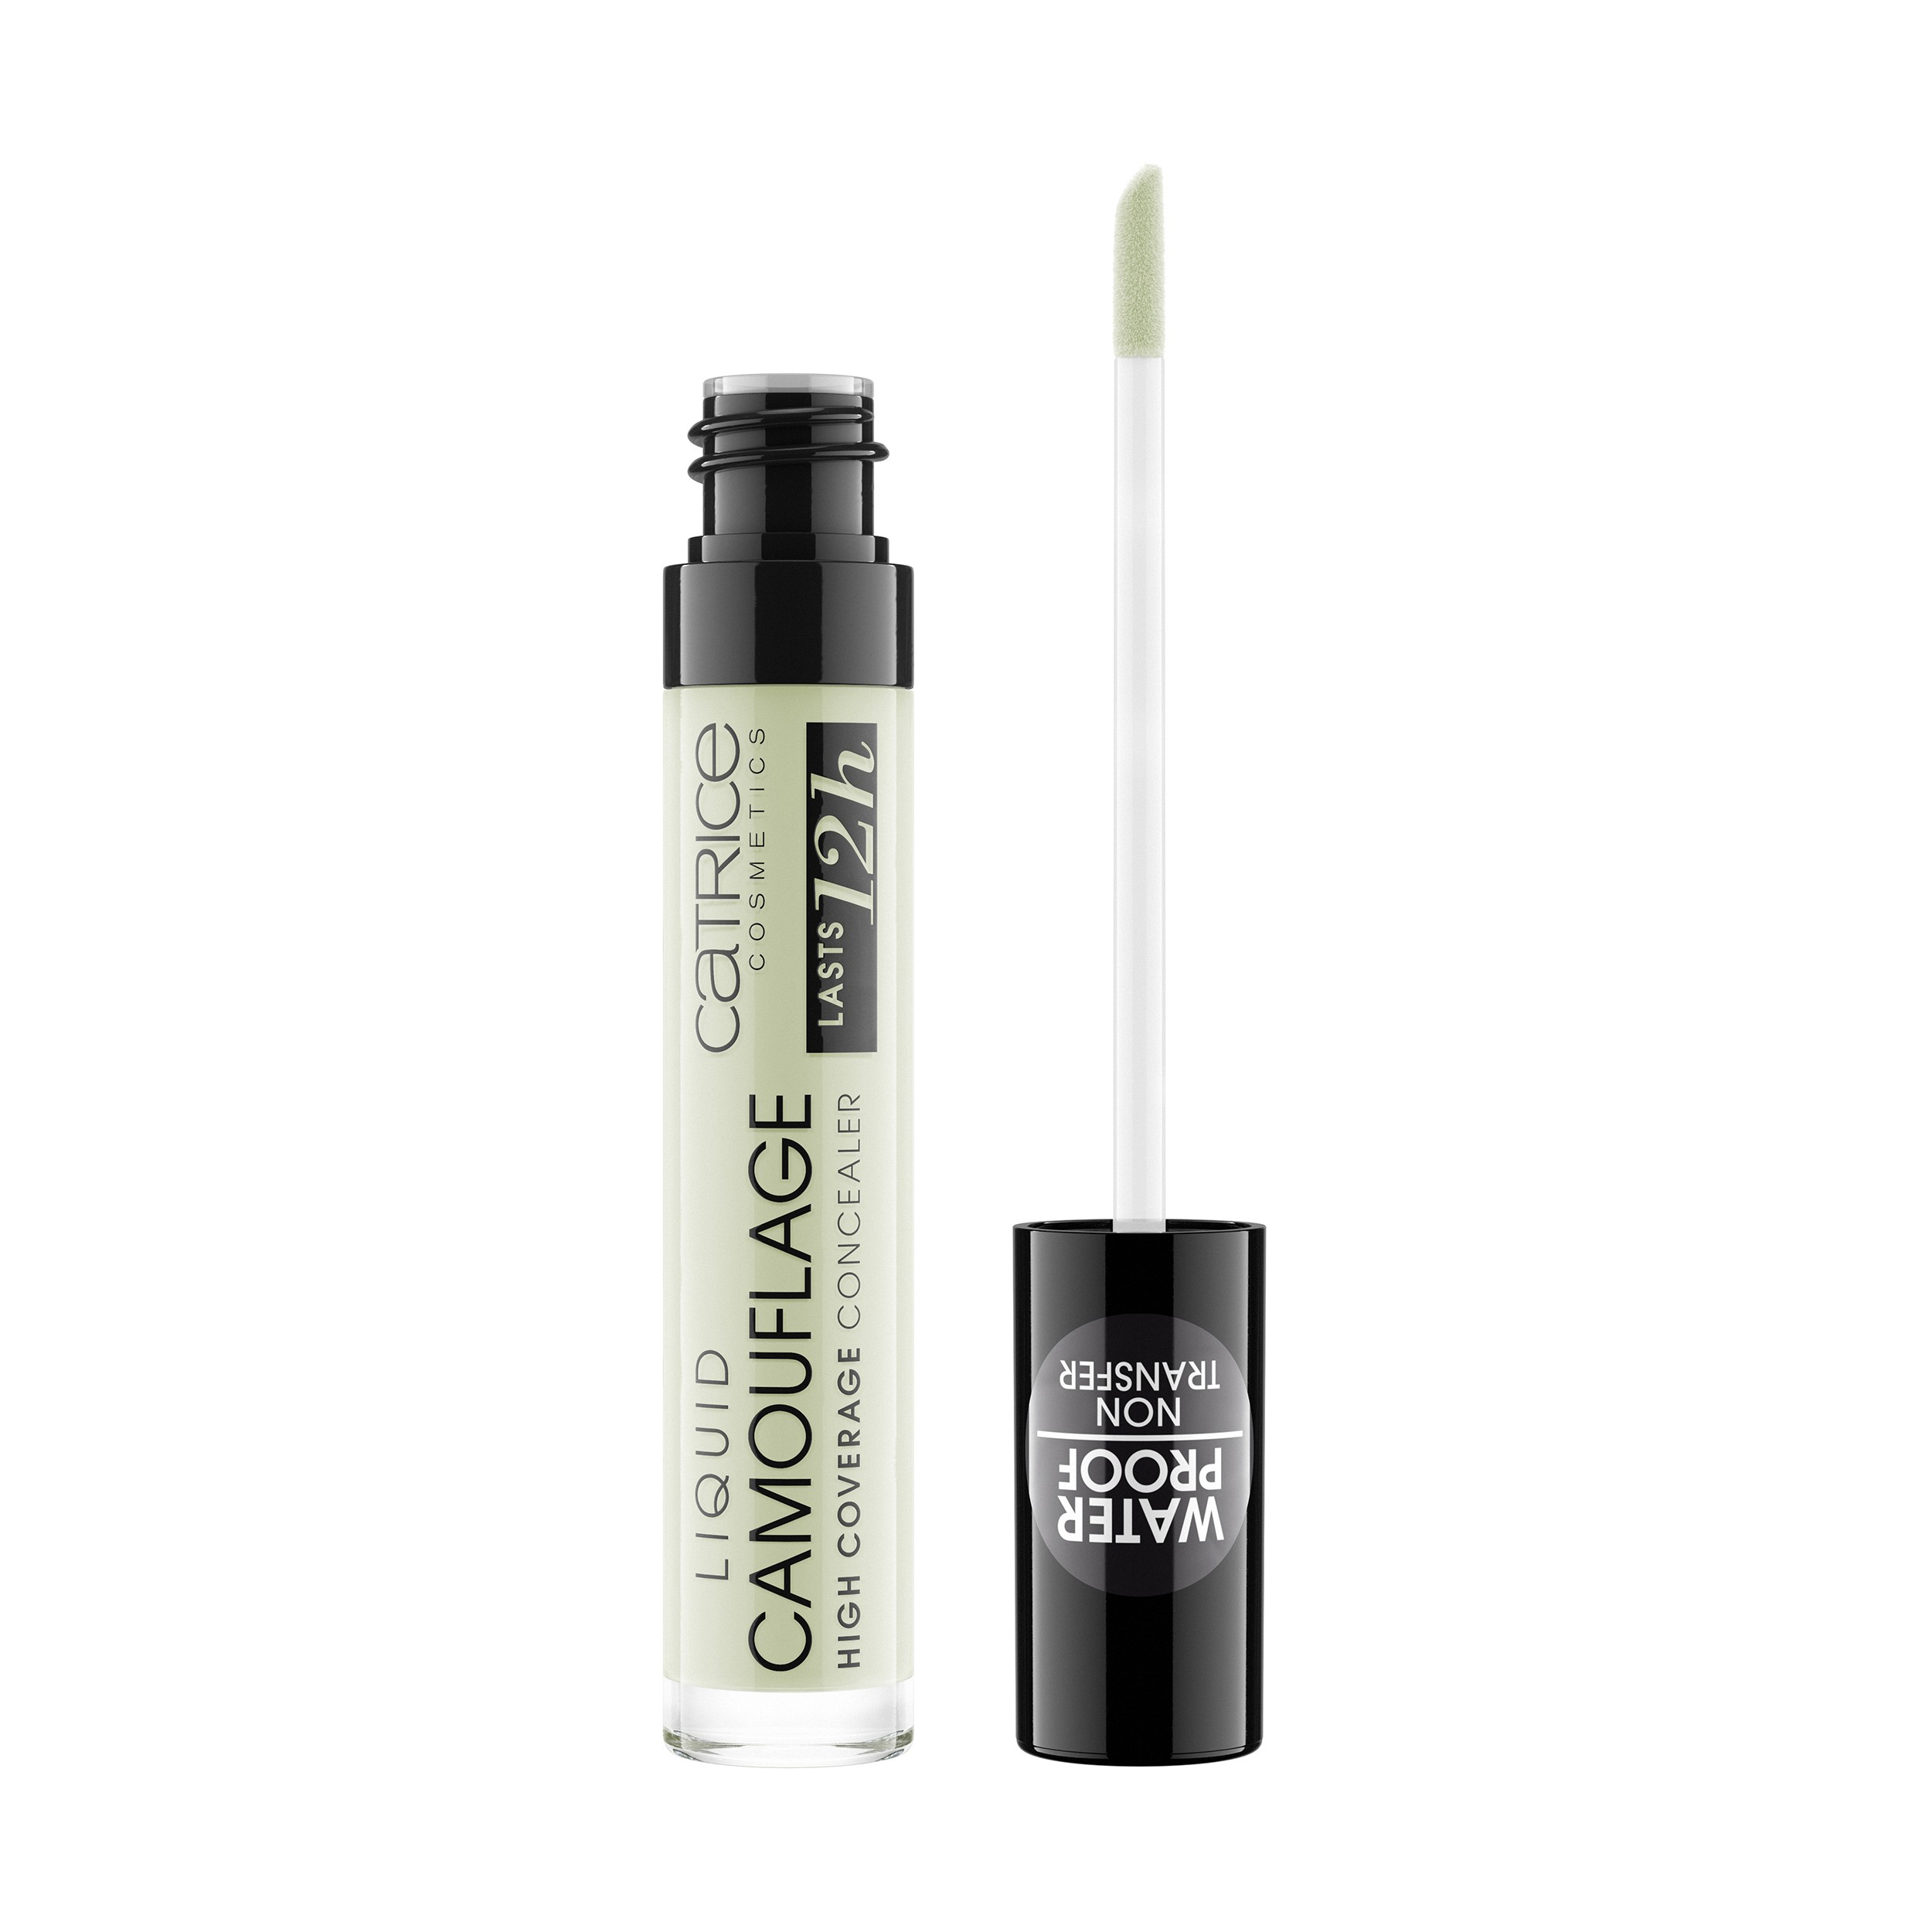 Flüssig-Concealer - Liquid Camouflage High Coverage Concealer